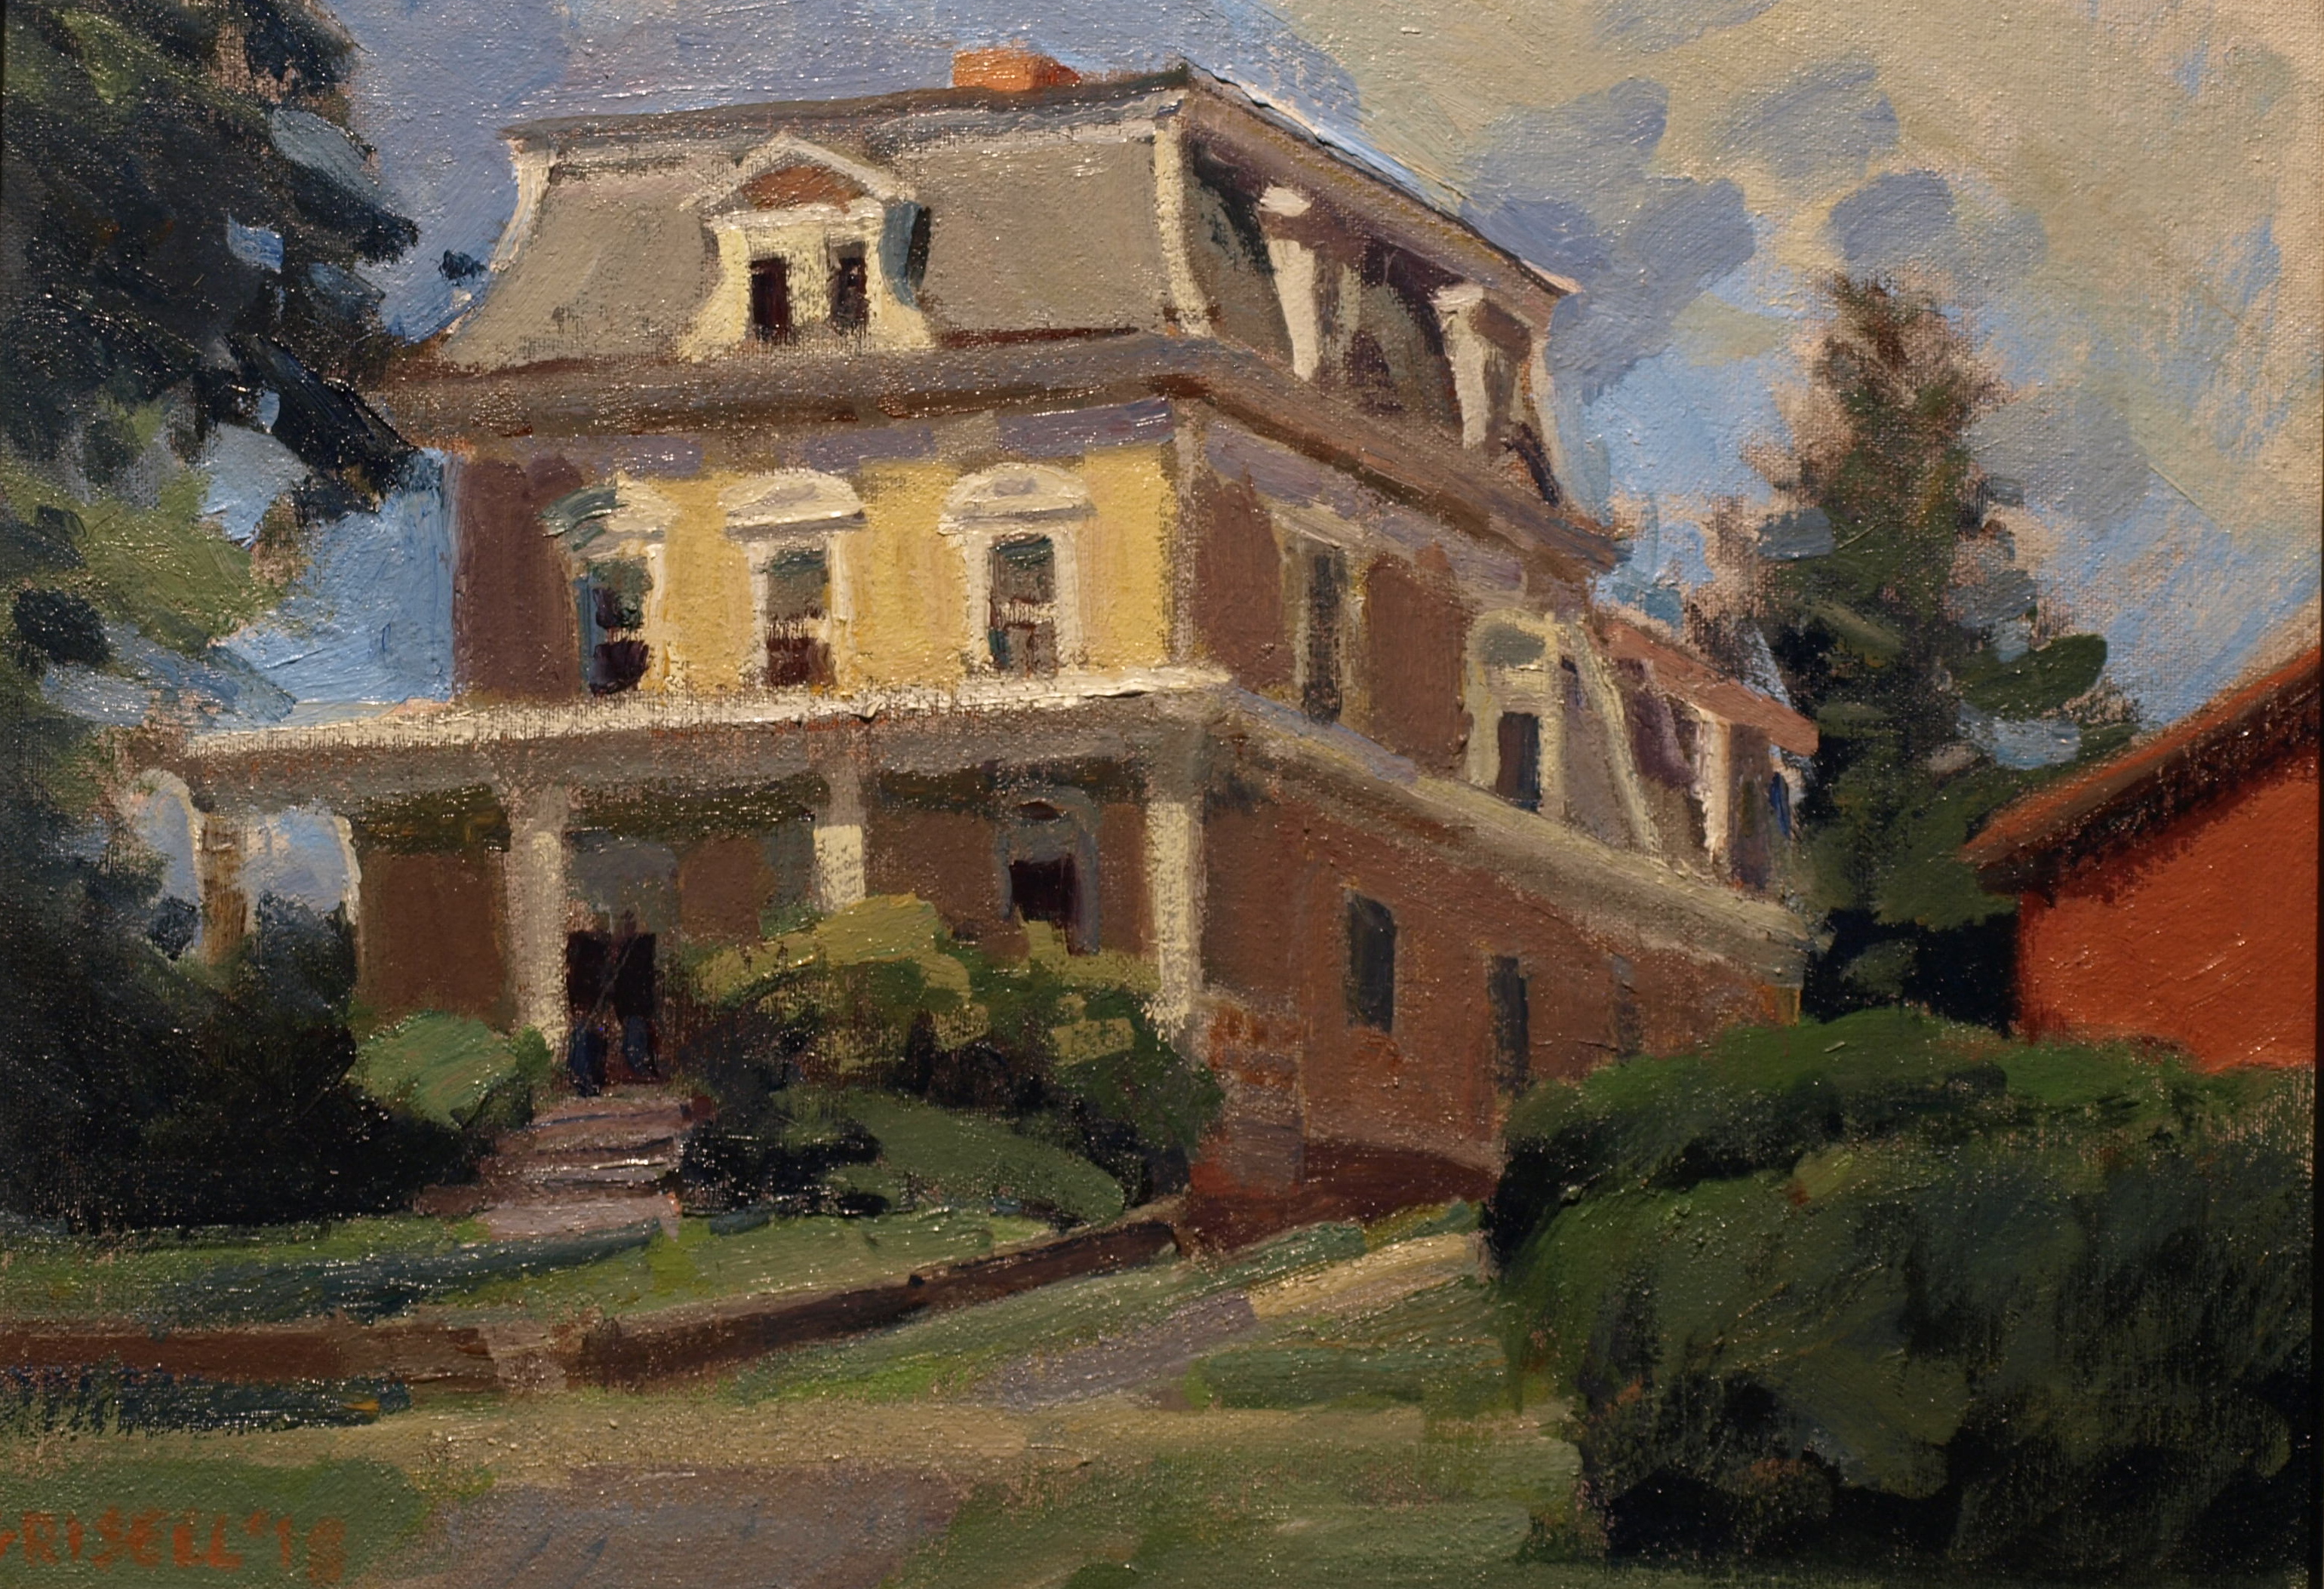 Victorian House, Oil on Canvas on Panel, 12 x 16 Inches, by Susan Grisell, $300